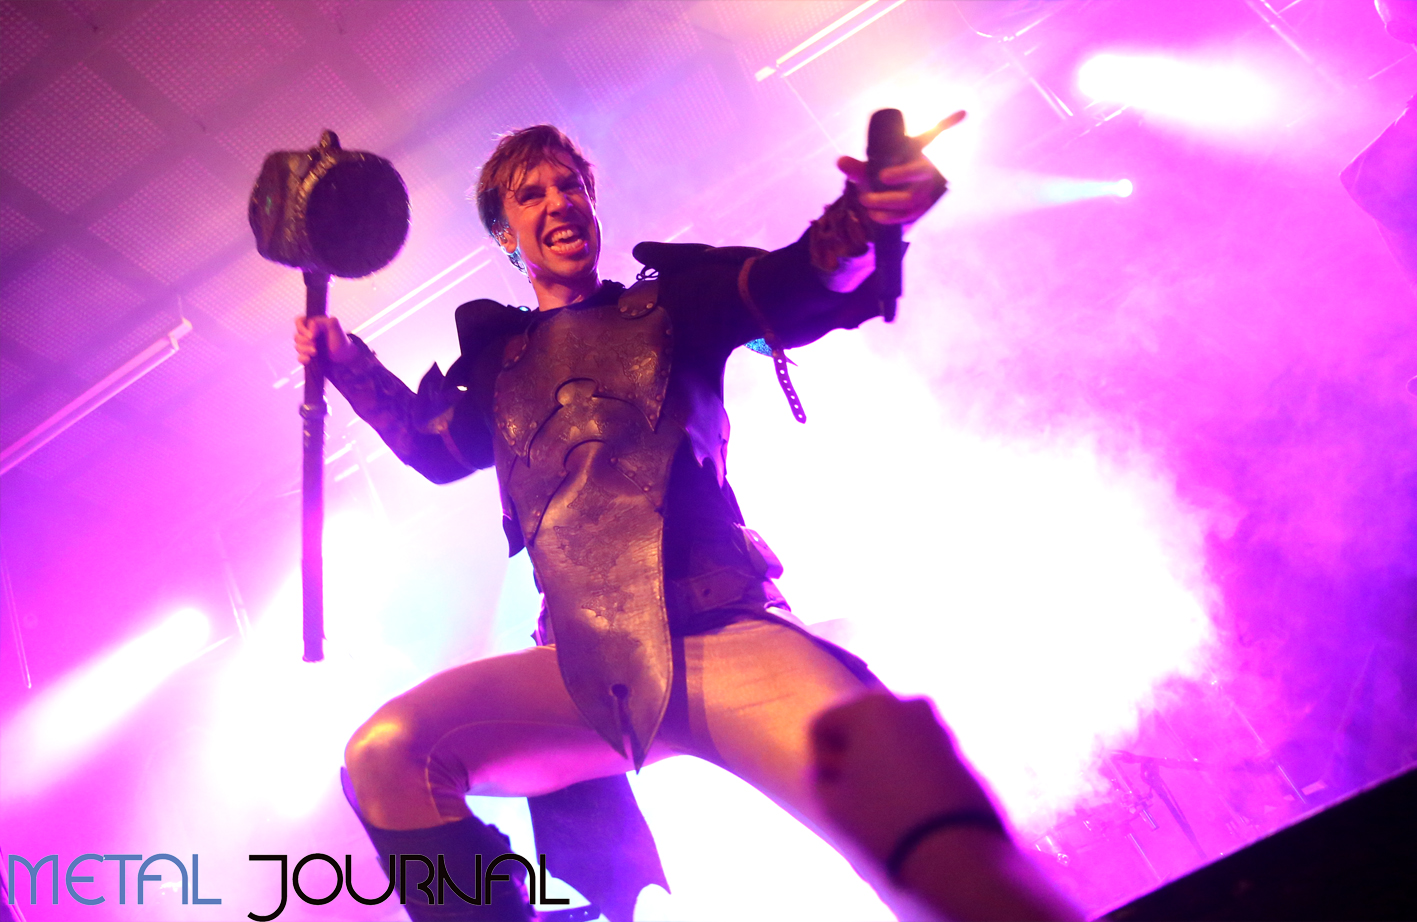 gloryhammer - metal journal 2018 pic 1